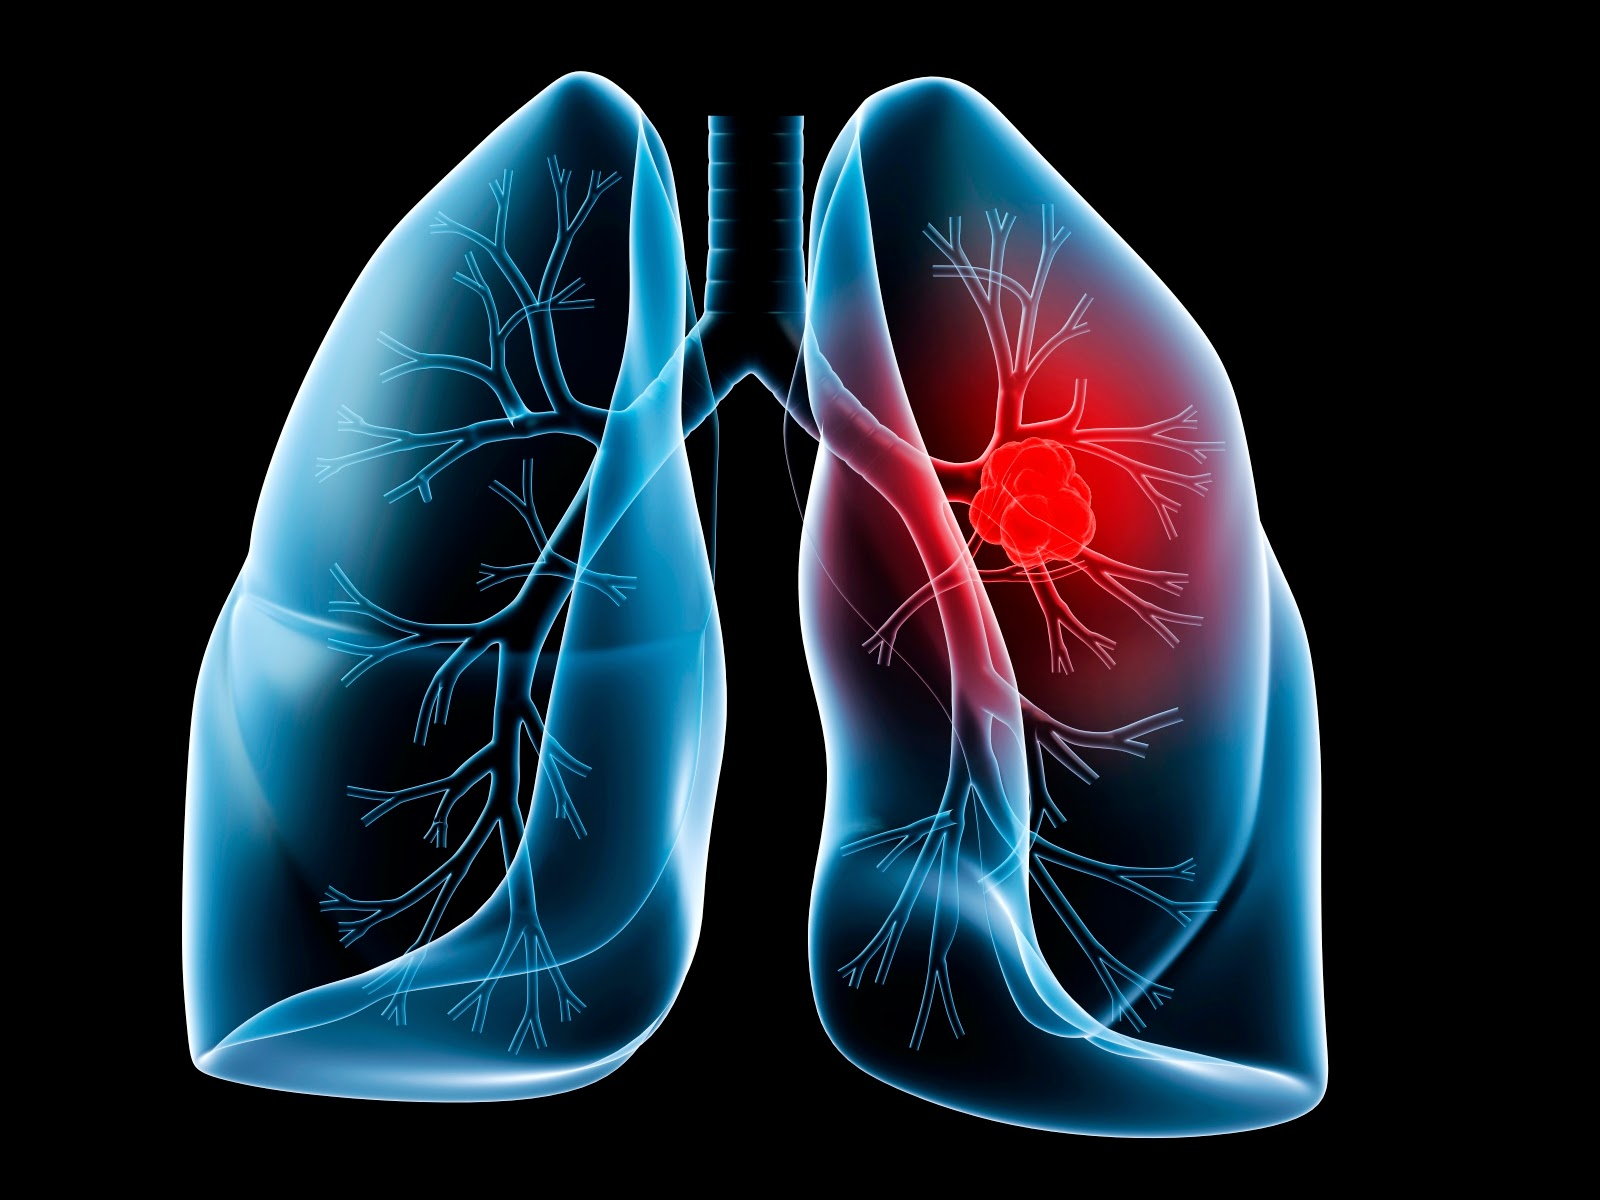 Novel Mechanism Controlling Lung Cancer Stem Cell Growth Discovered